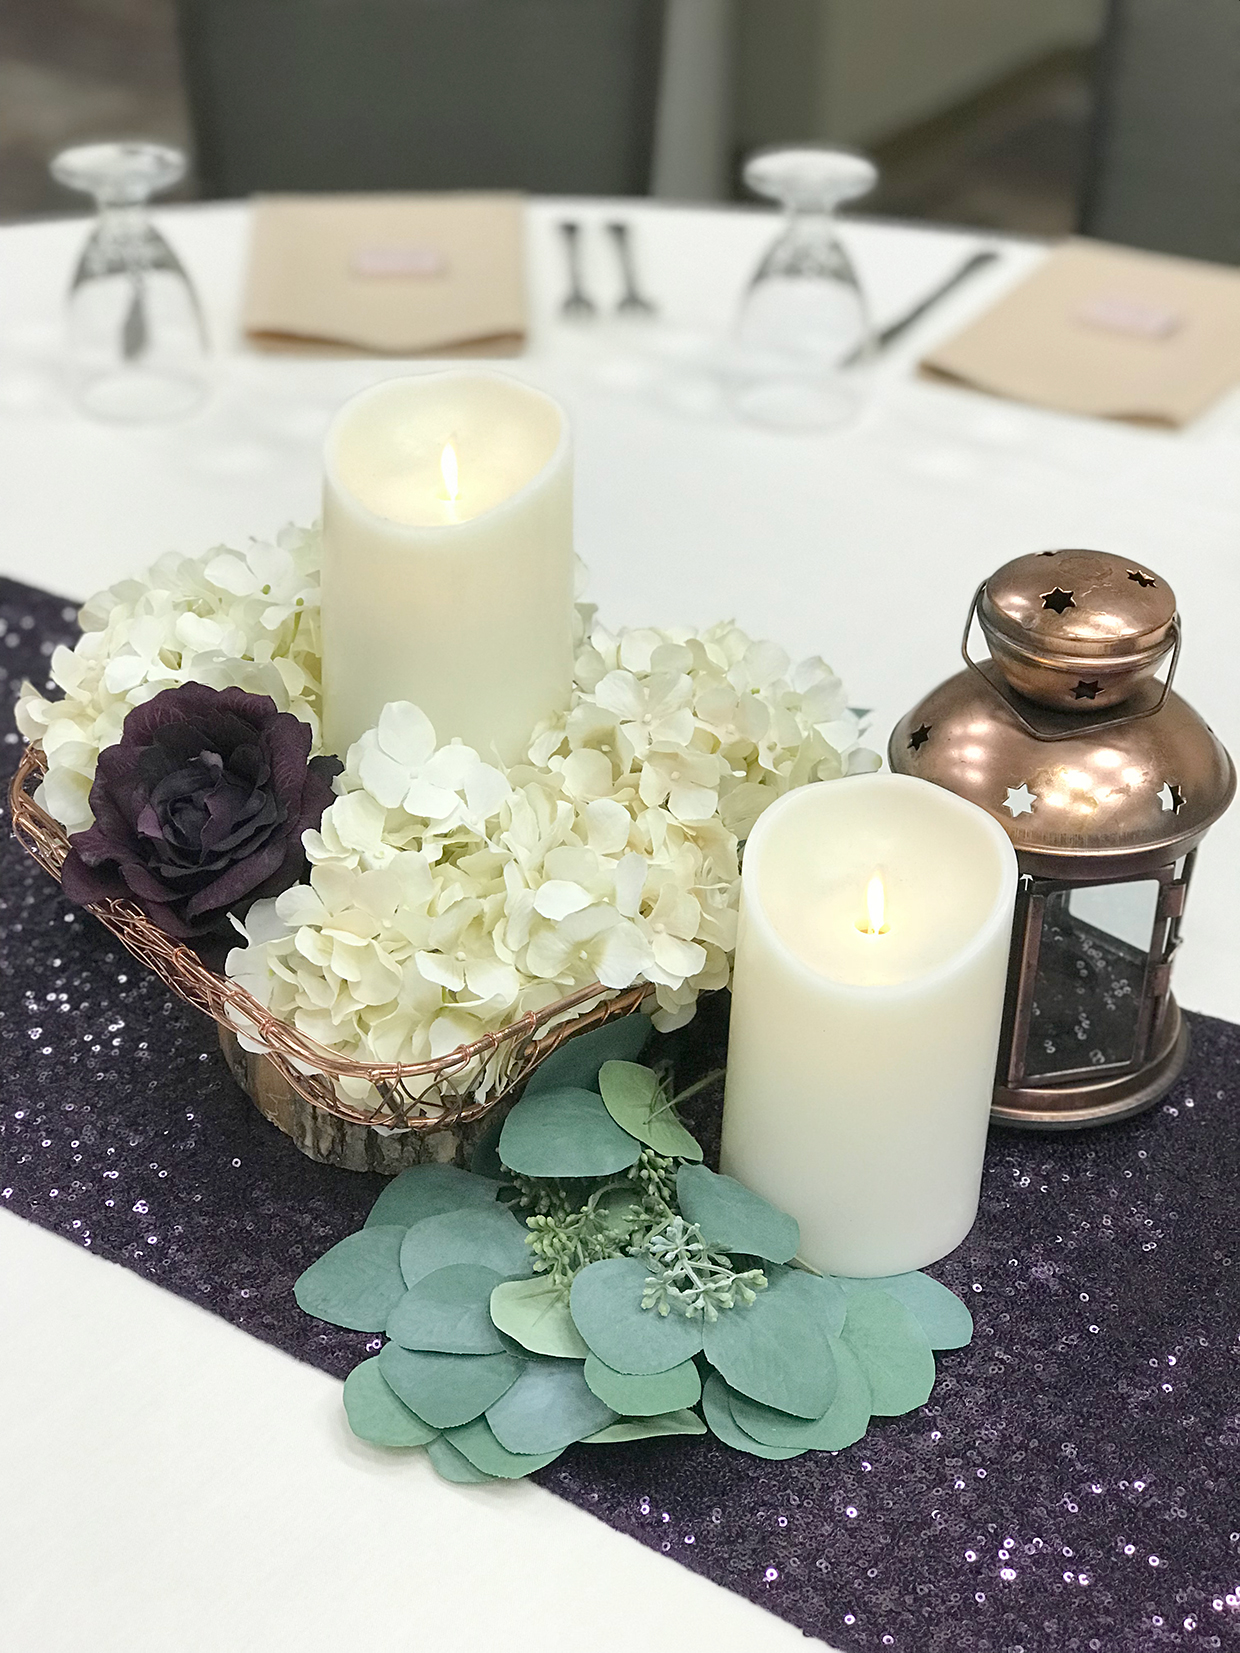 Dorable Winter Wedding Centerpieces Composition - The Wedding Ideas ...